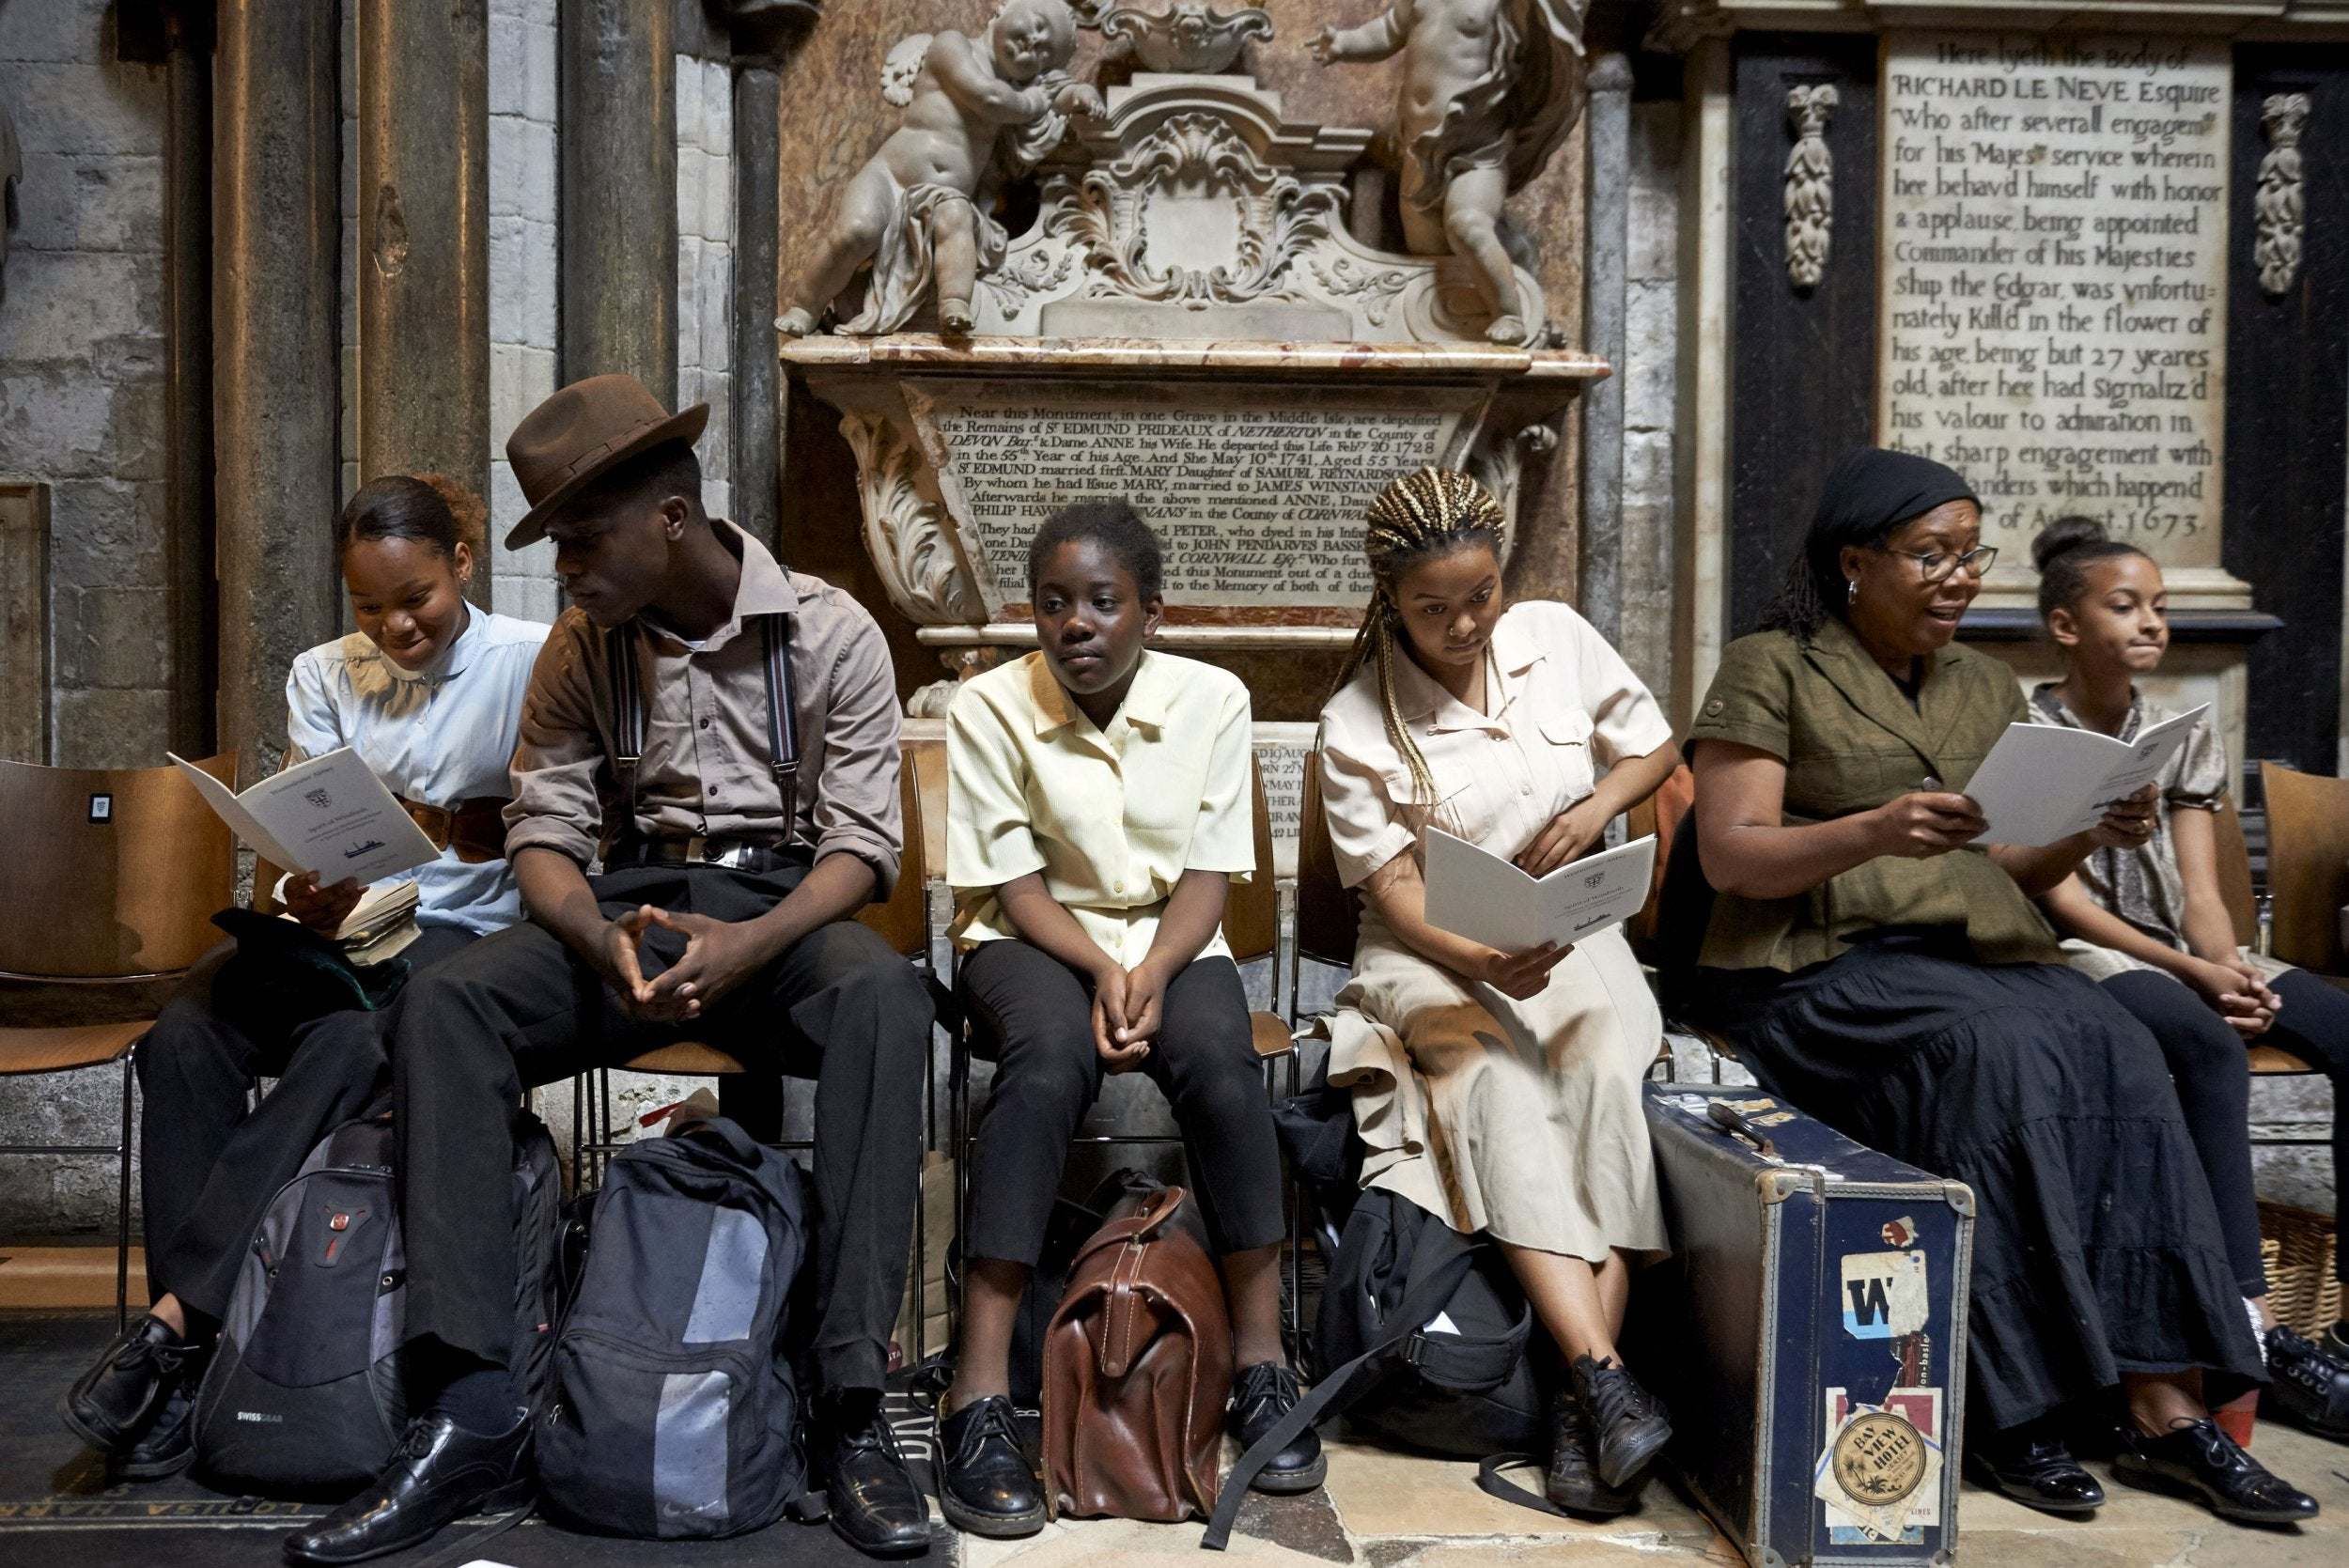 Social media has taught me more about Black British history than I ever learned in school – and that's a crying shame